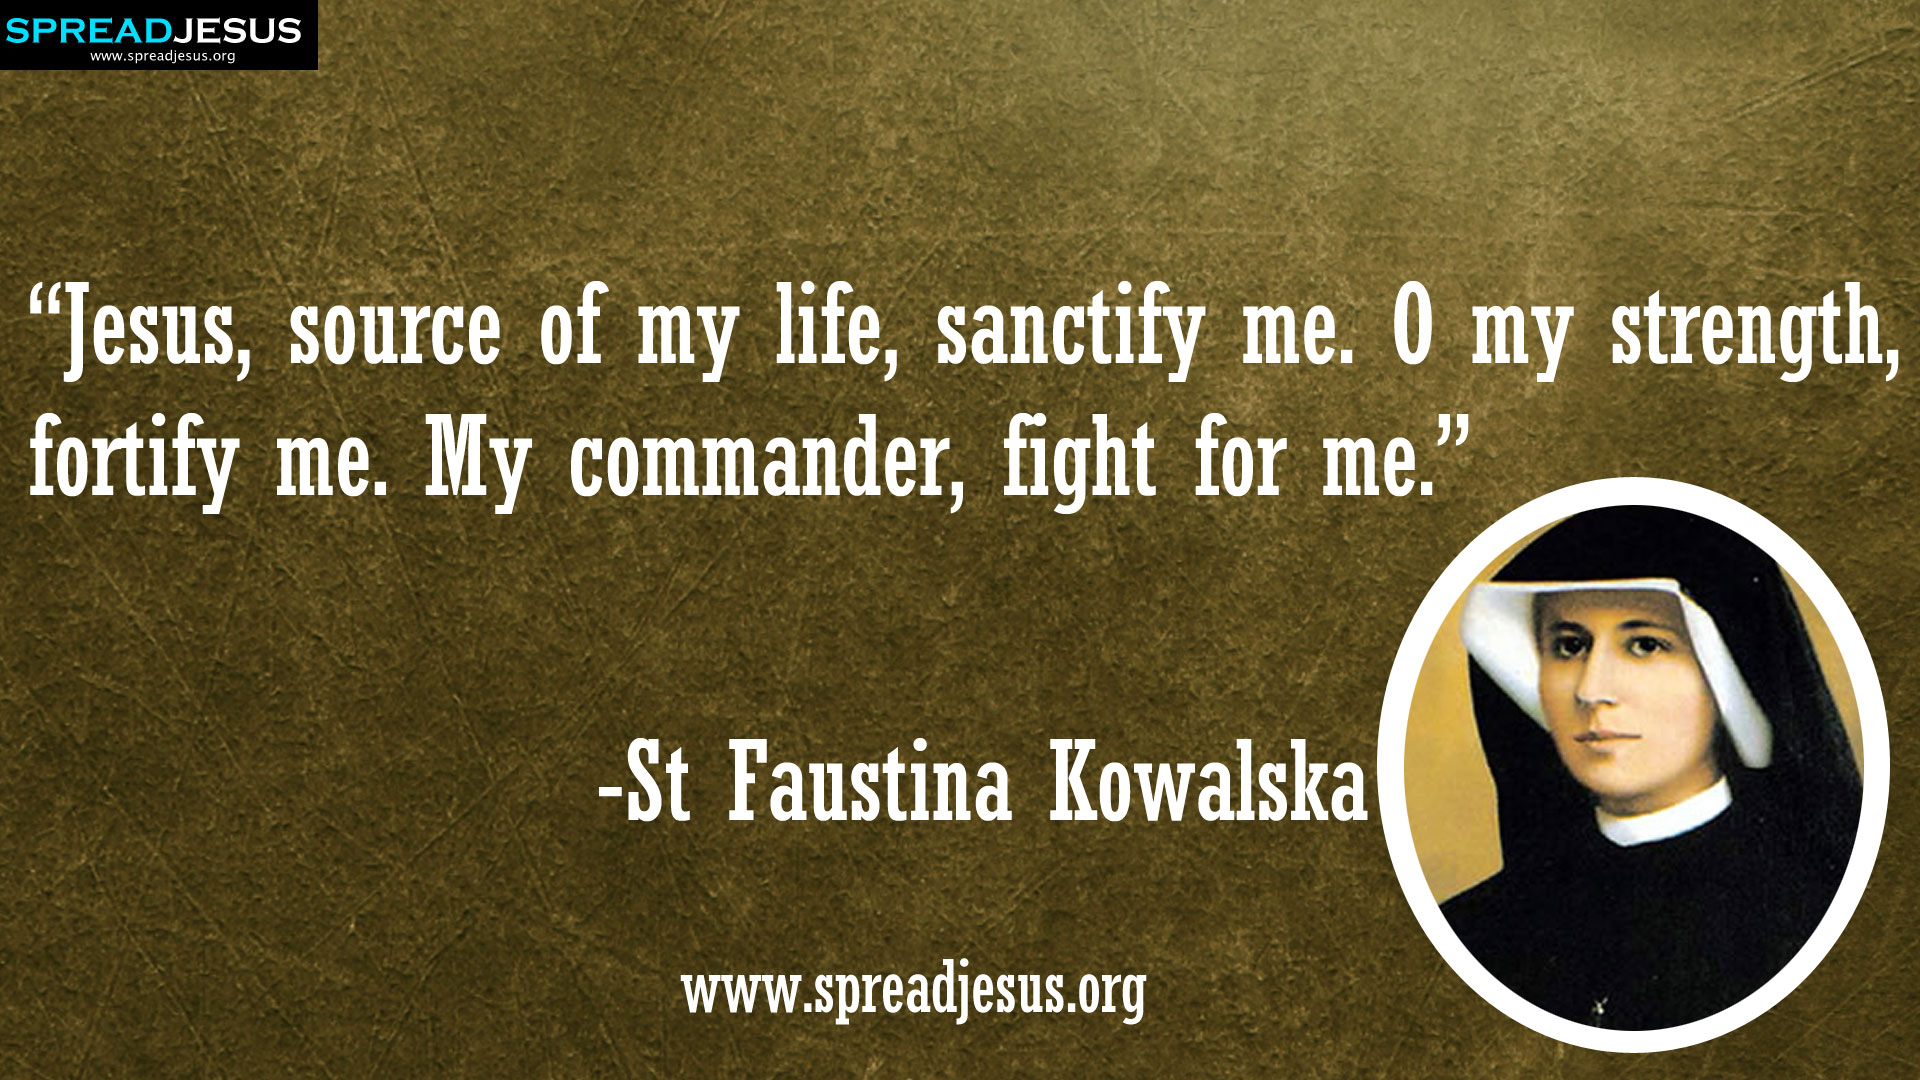 "St Faustina Kowalska:St Faustina Kowalska QUOTES HD-WALLPAPERS DOWNLOAD:CATHOLIC SAINT QUOTES HD-WALLPAPERS DOWNLOAD-""Jesus, source of my life, sanctify me. O my strength, fortify me.-St Faustina Kowalska-spreadjesus.org"